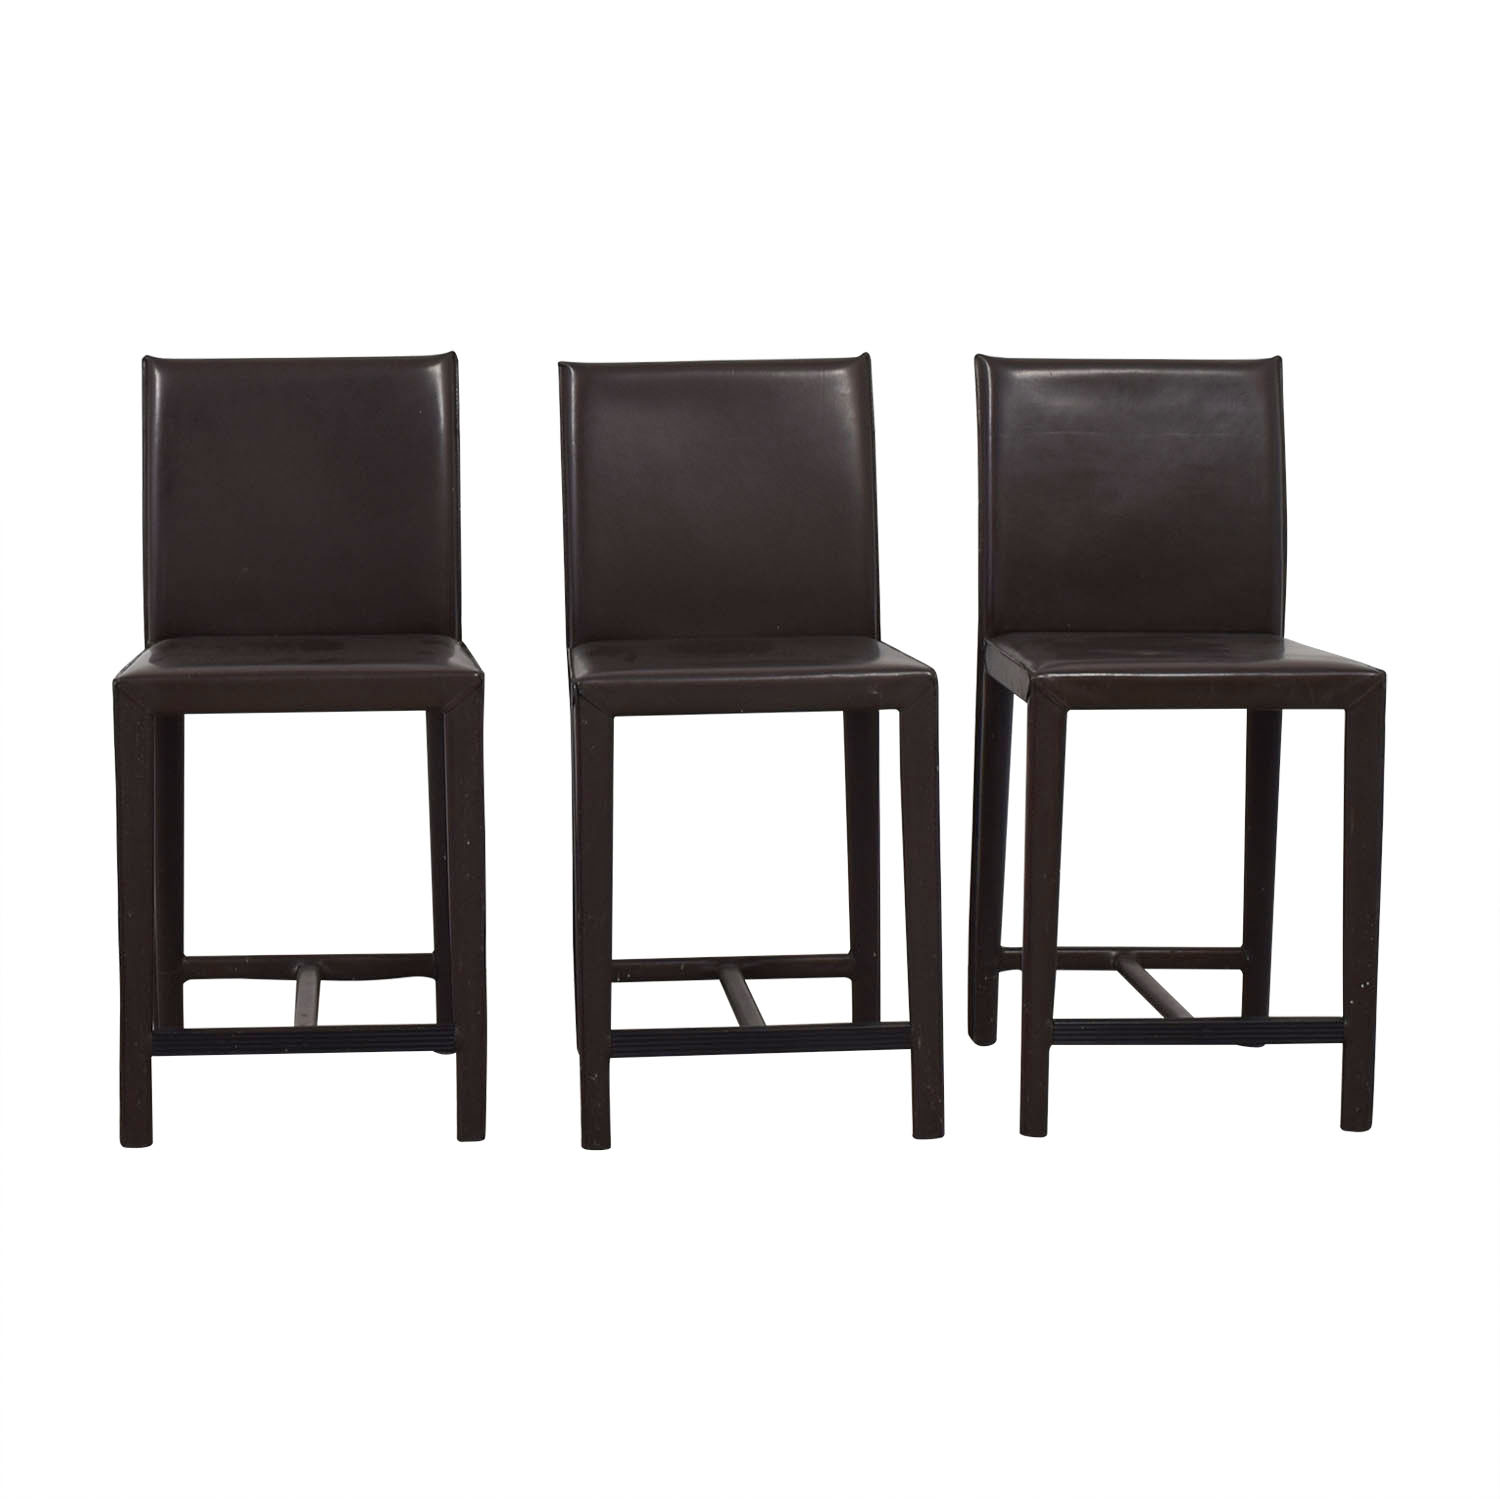 Crate & Barrel Crate & Barrel Folio Brown Leather Bar Stools nj